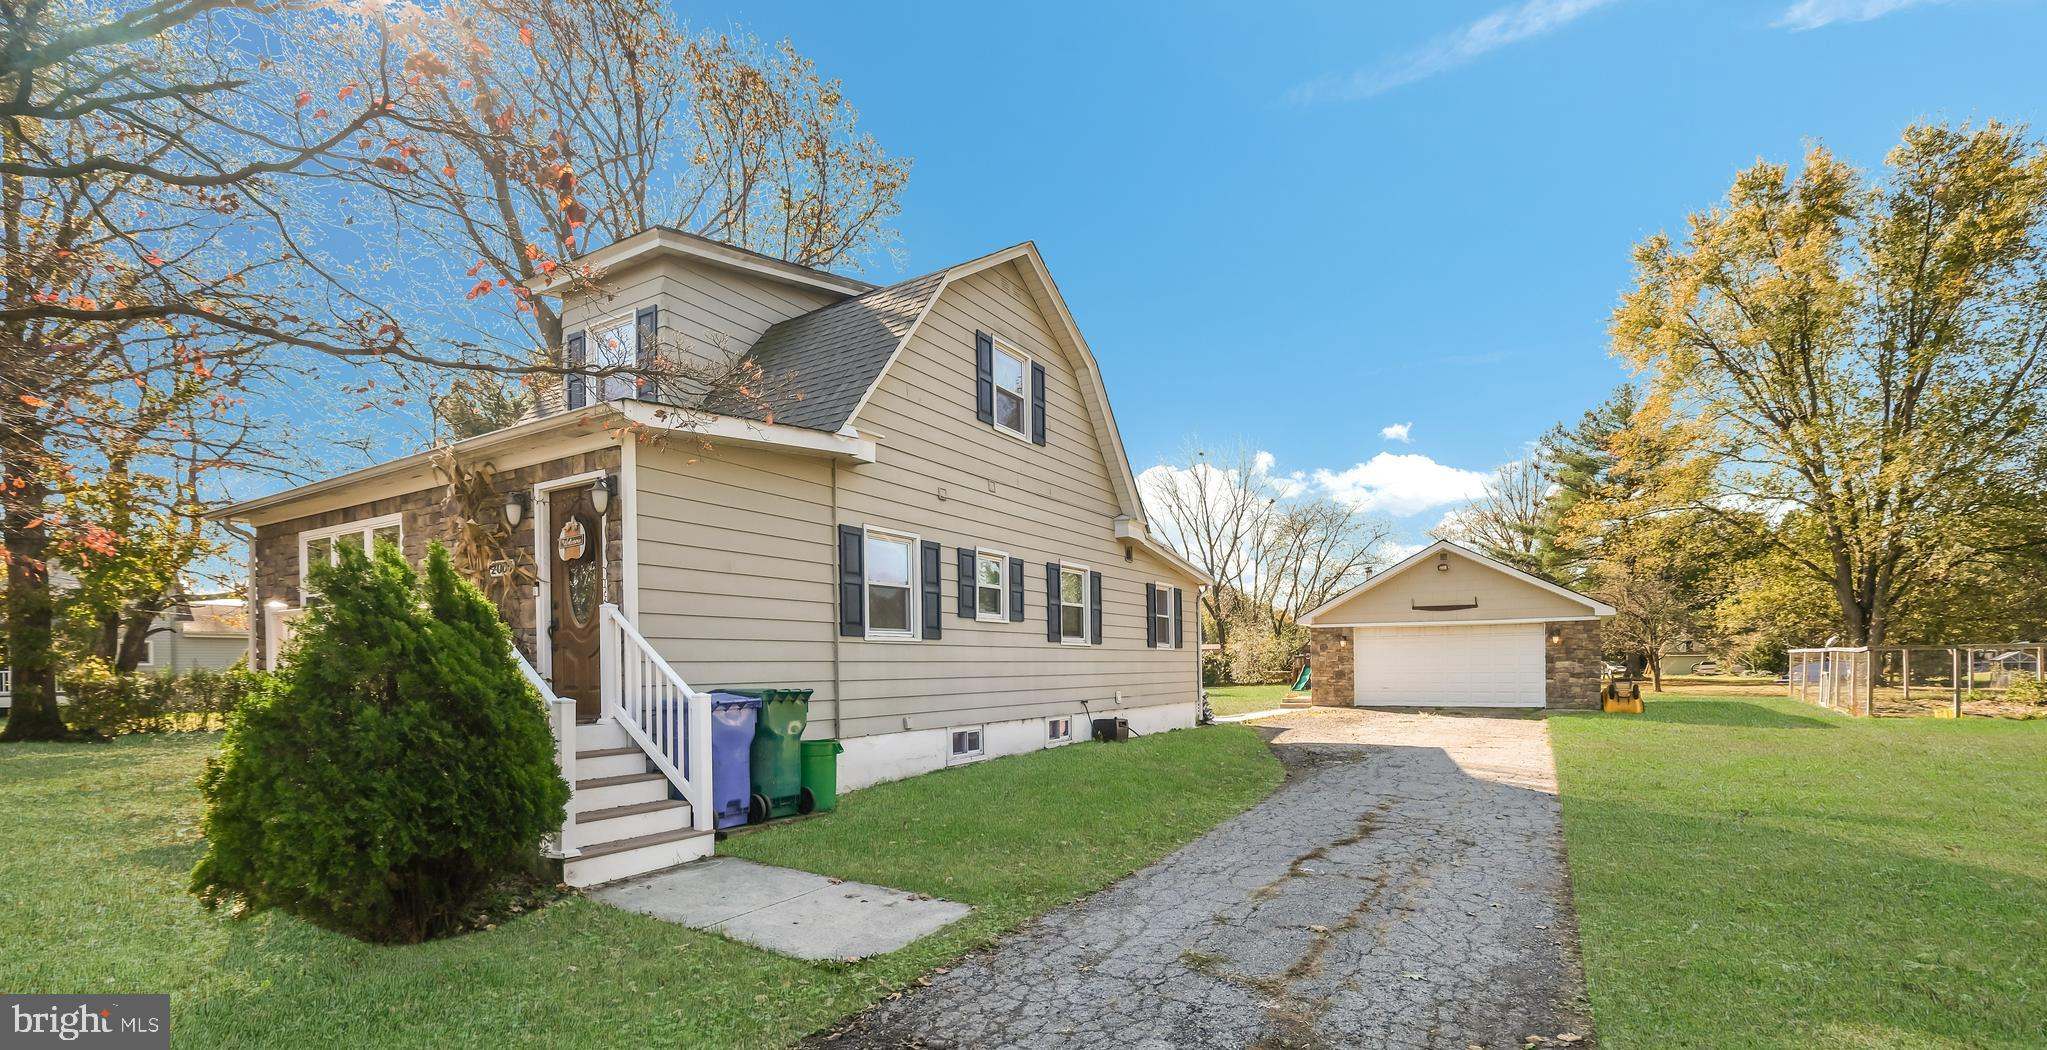 2005 EDGELY AVENUE, LEVITTOWN, PA 19057